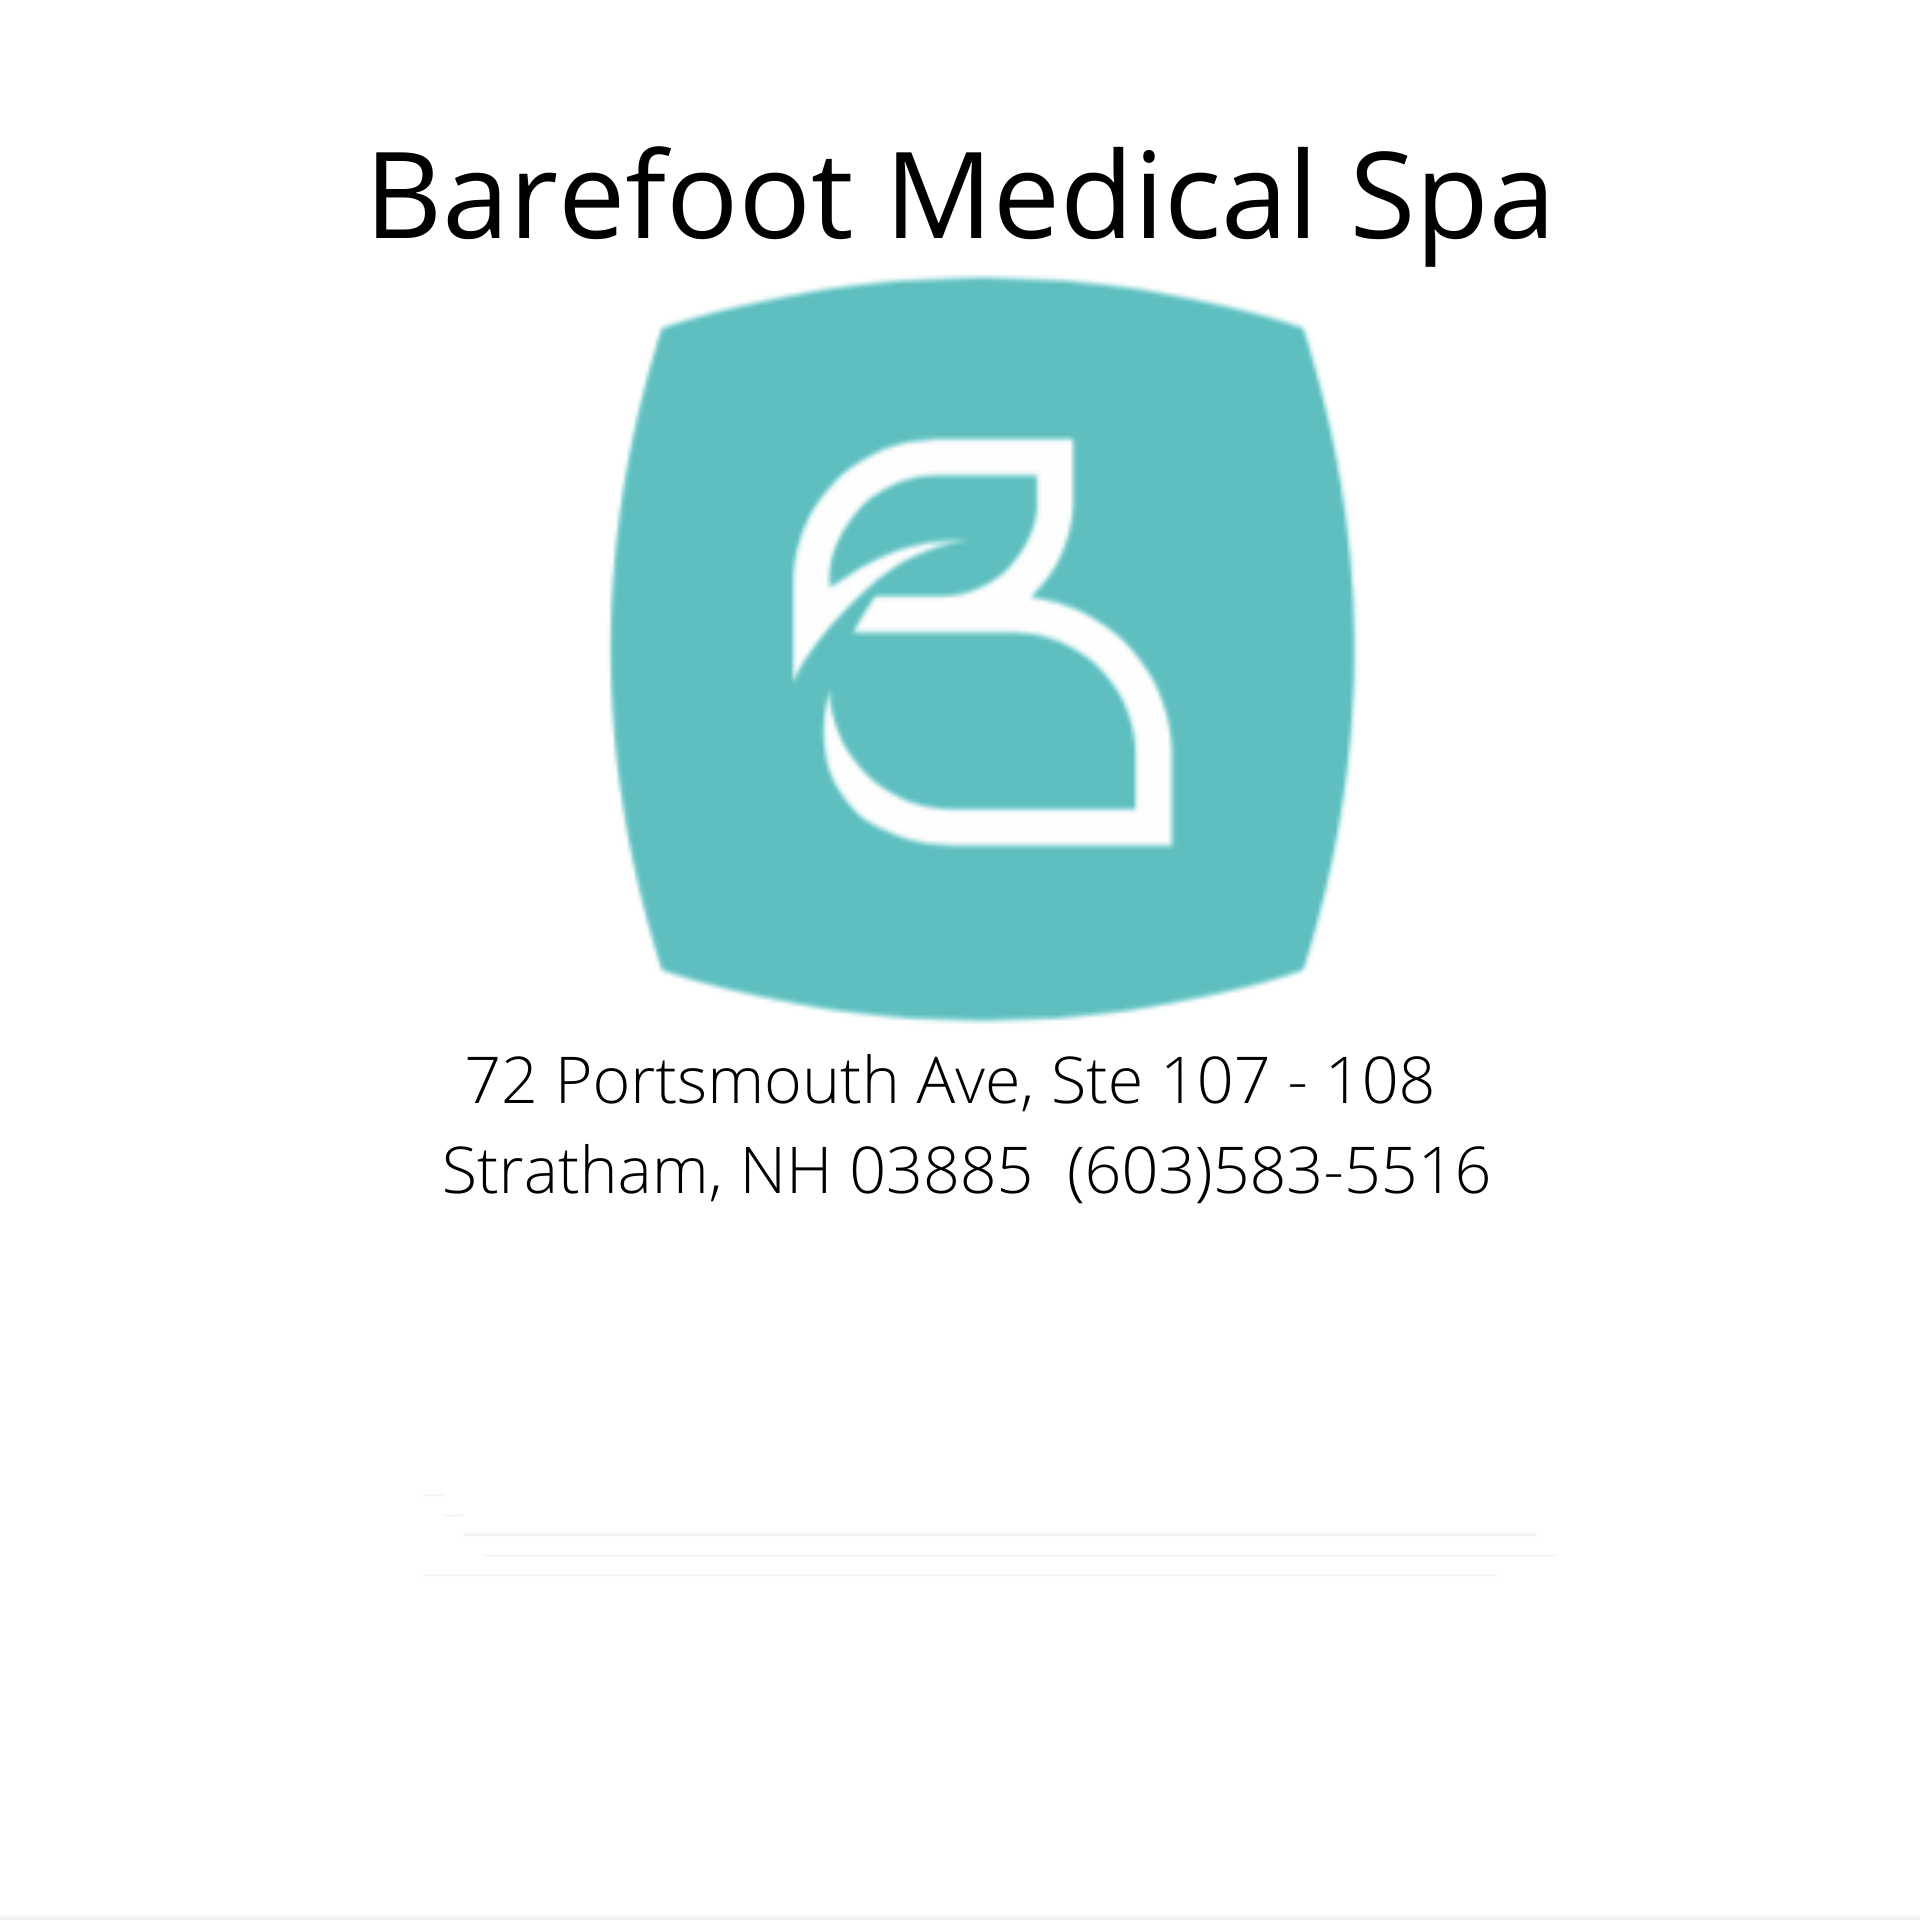 Barefoot-medical-spa-Stratham-NH-hug-patrol